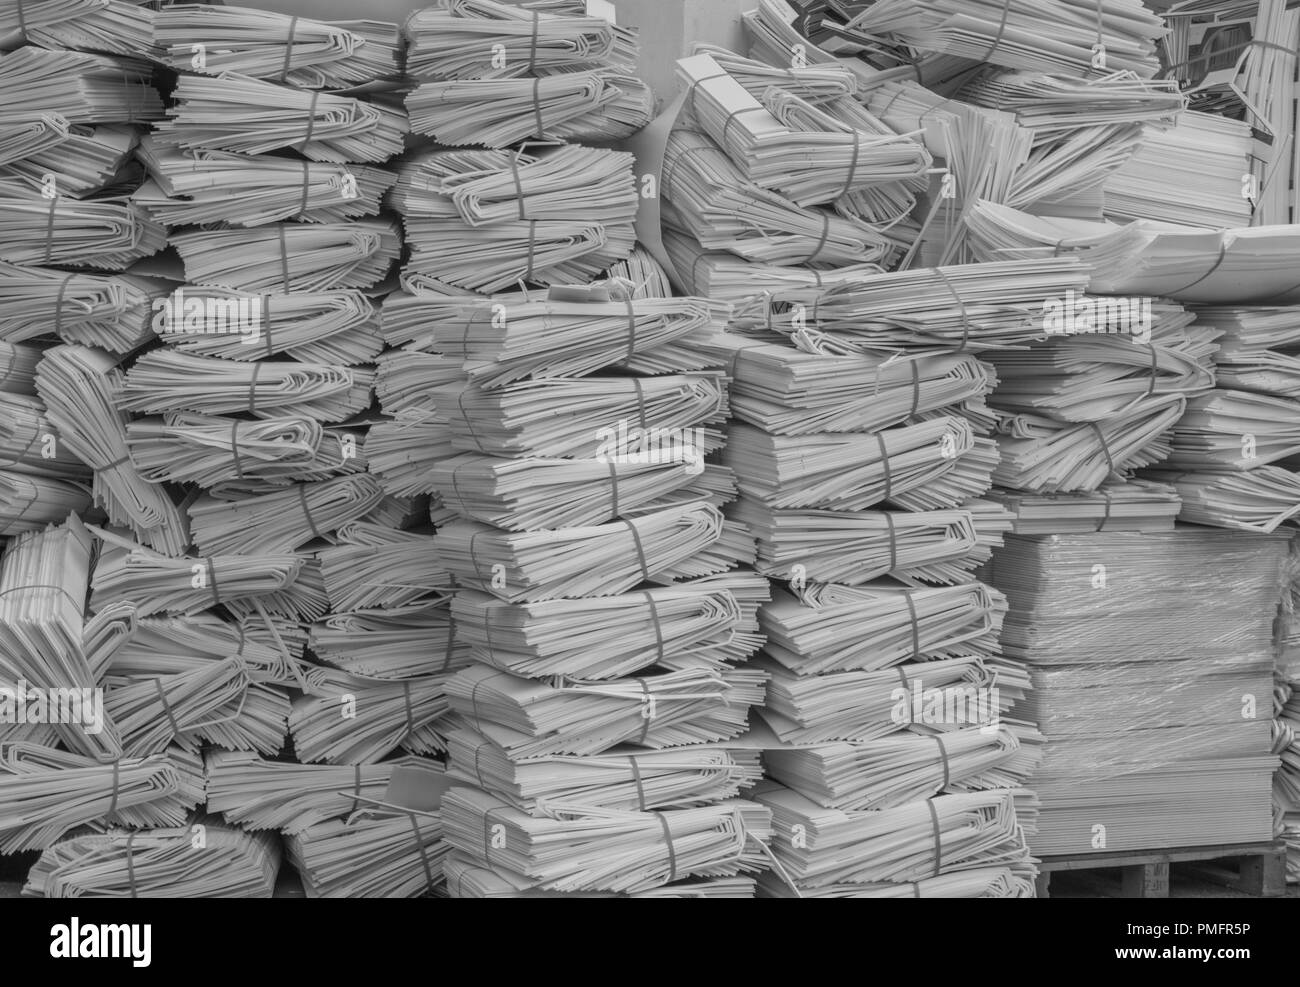 Paper Stacks in Black and White-isolated shot of paper stacks in bound bunches, for recycling, in black and white - Stock Image